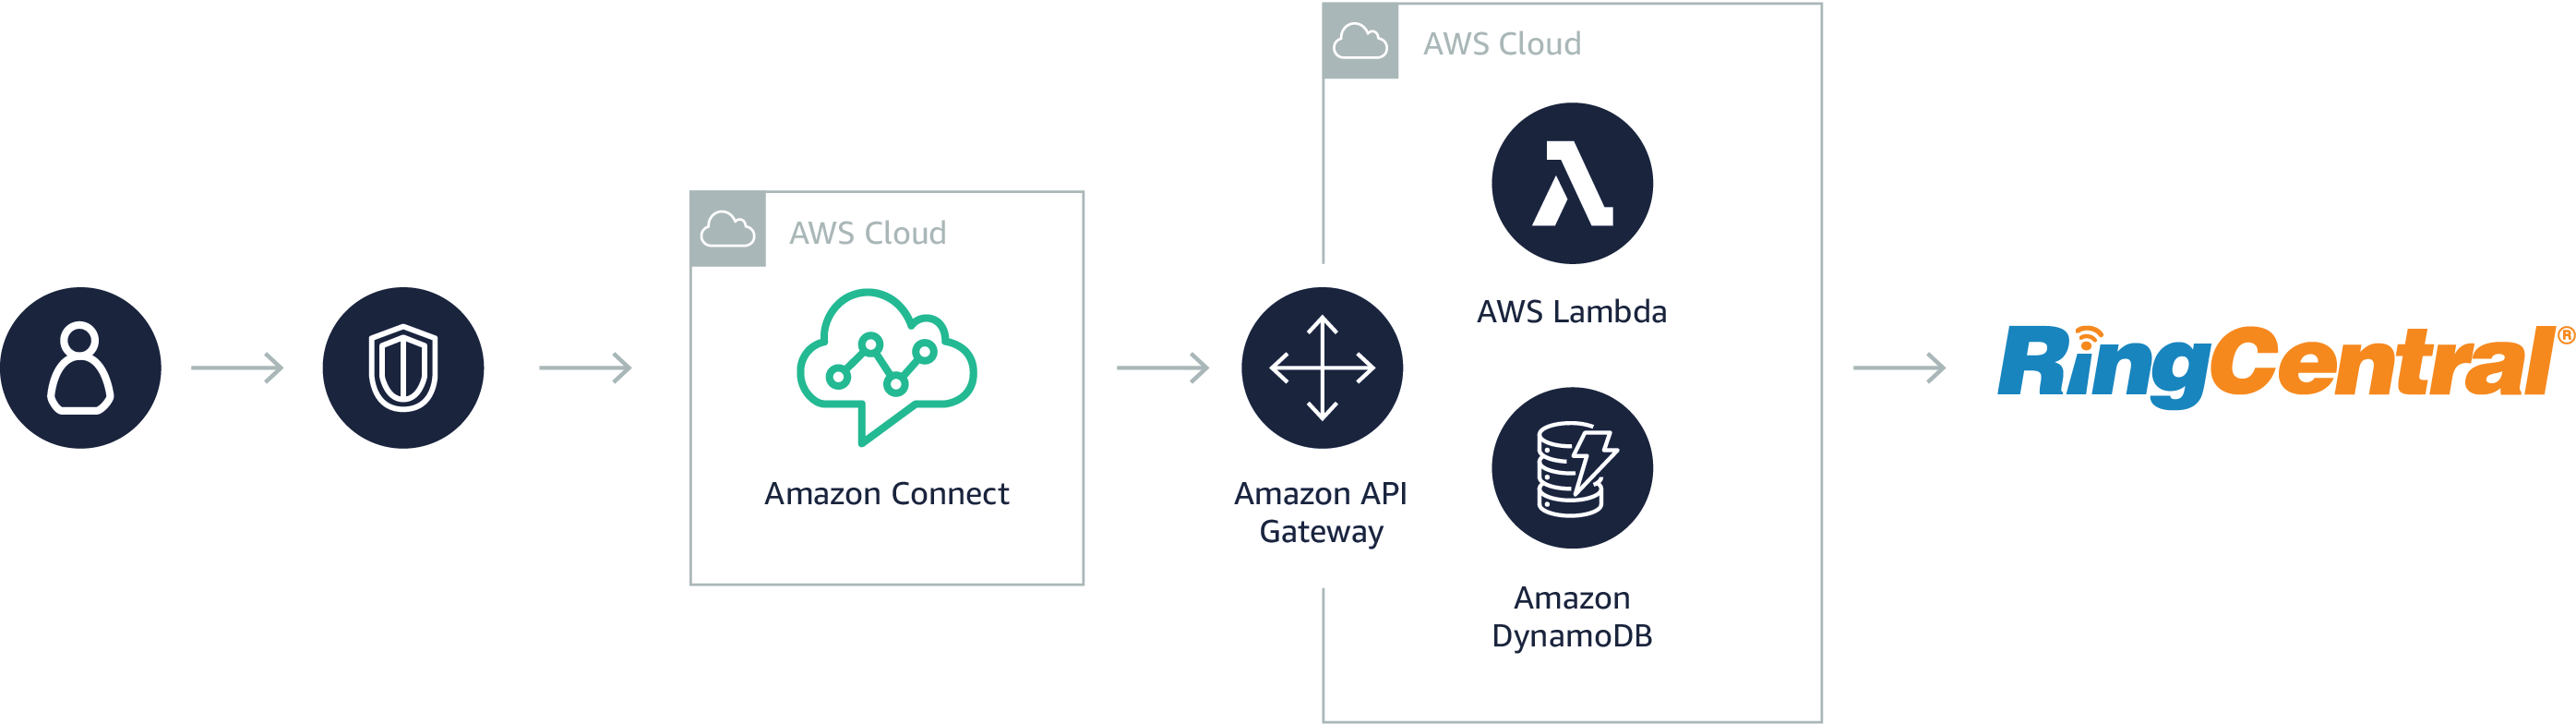 RingCentral for Amazon Connect on AWS